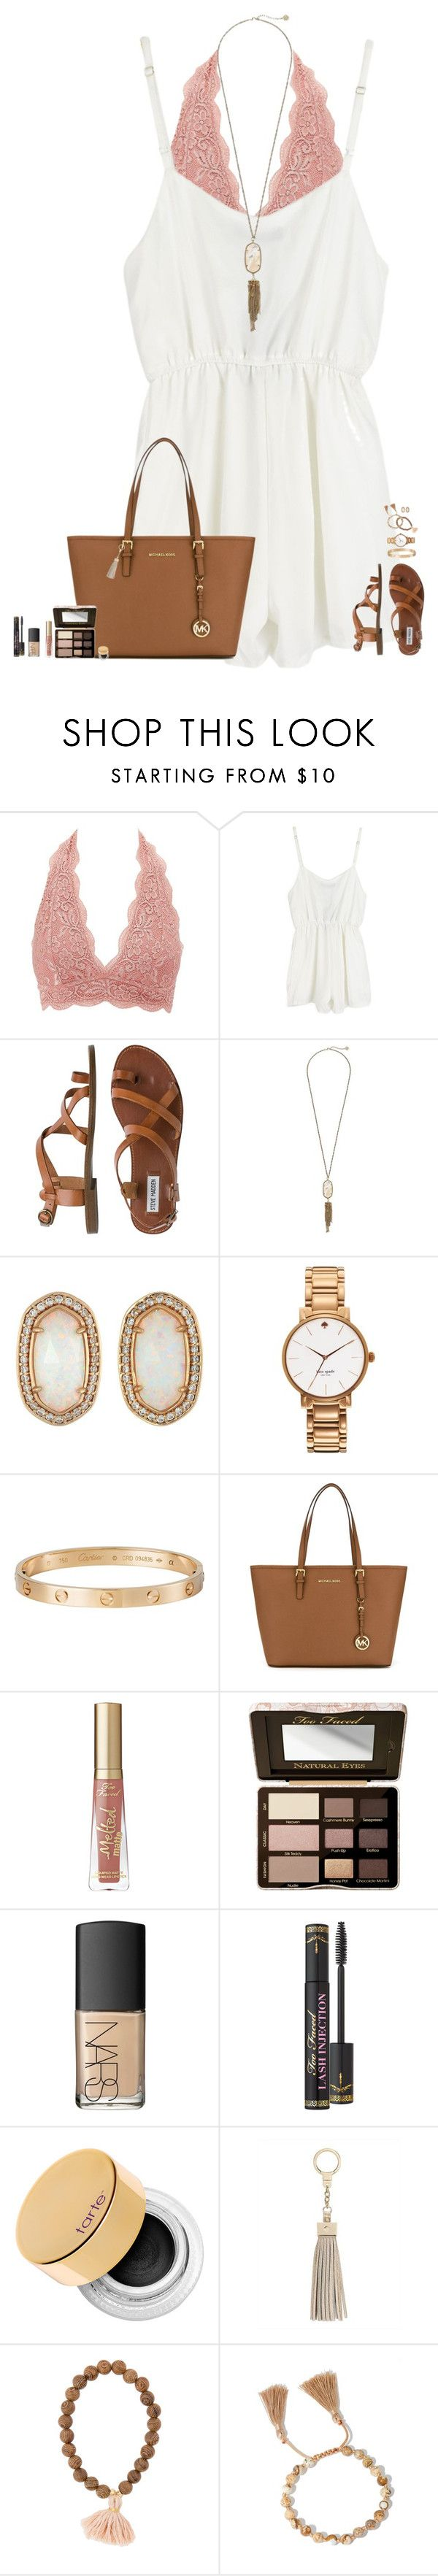 """- b o h o   v i b e s -"" by maggie-prep ❤ liked on Polyvore featuring Charlotte Russe, Steve Madden, Kendra Scott, Kate Spade, Cartier, MICHAEL Michael Kors, Too Faced Cosmetics, NARS Cosmetics, tarte and maggiesbestsets"